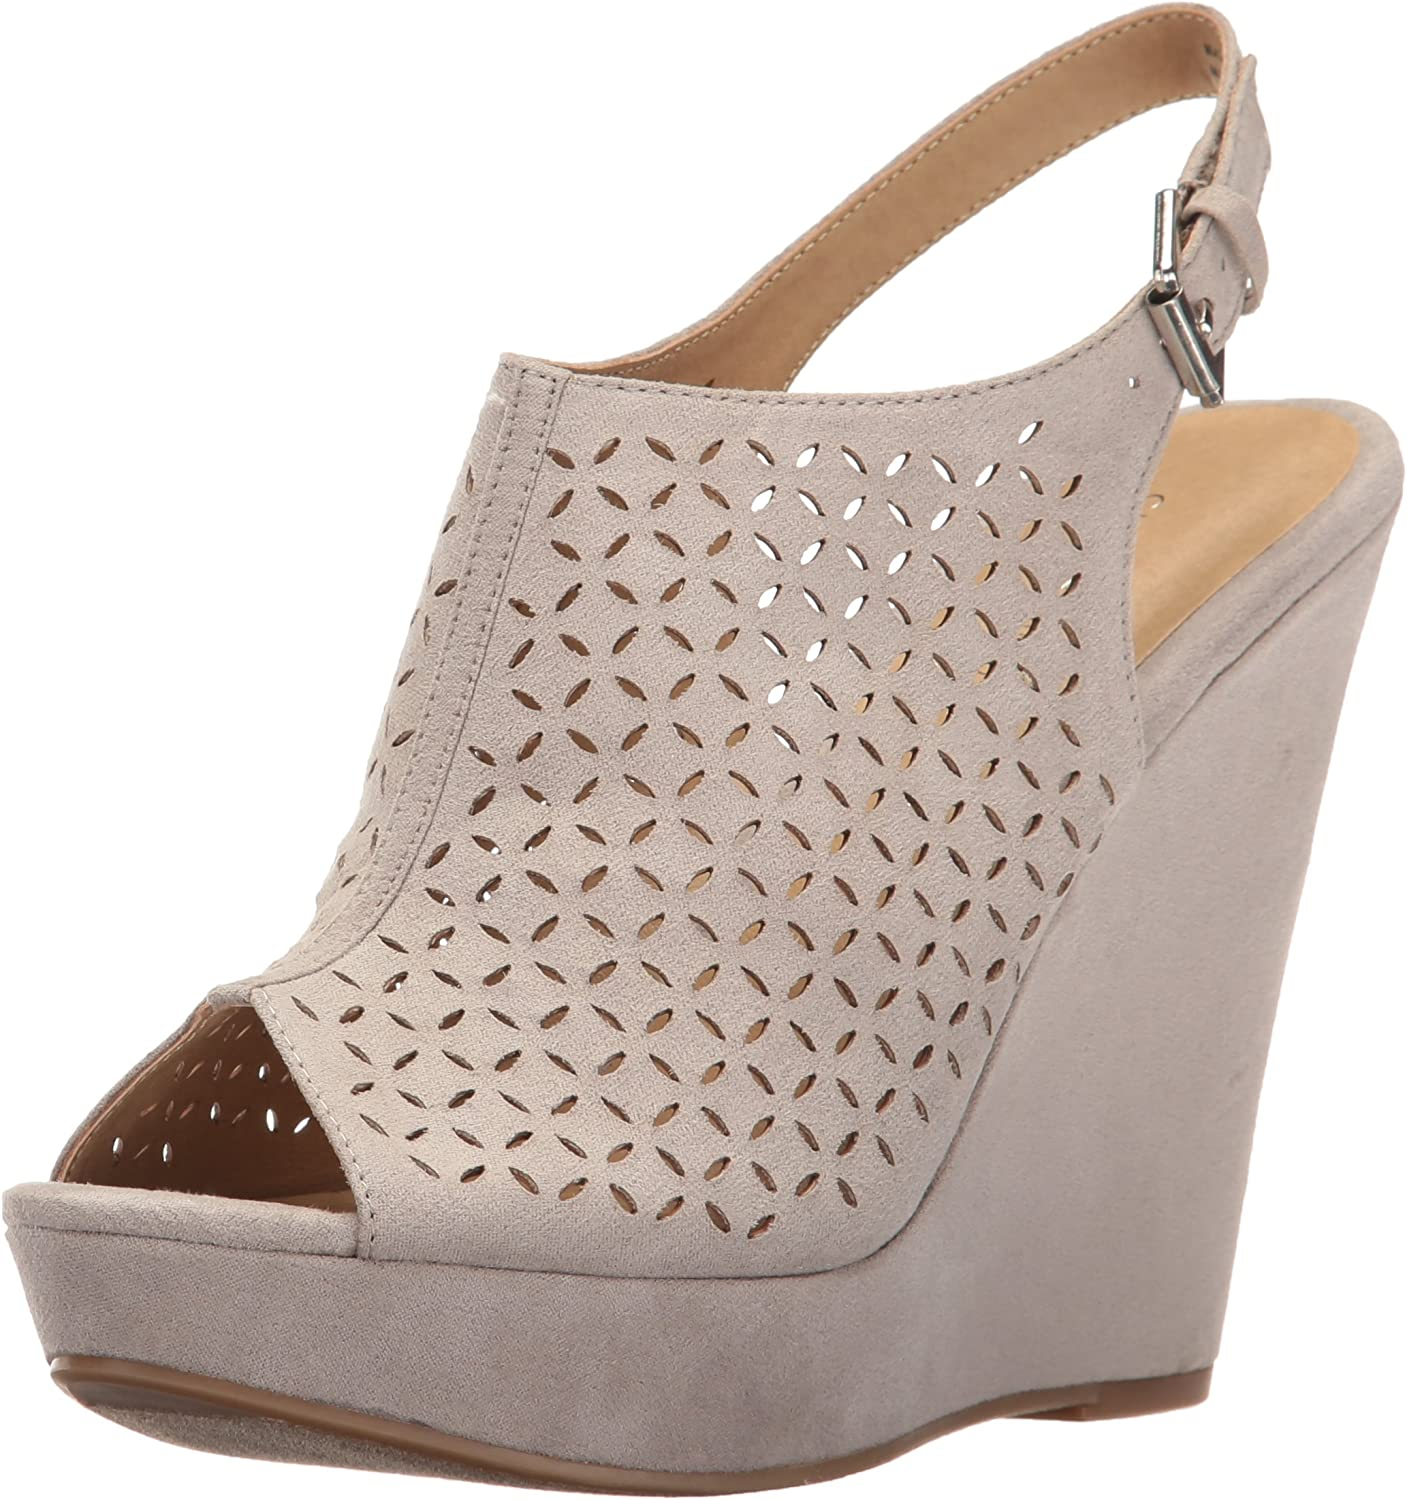 Chinese Laundry Online limited product Max 76% OFF Women's Wedge Sandal Matilda